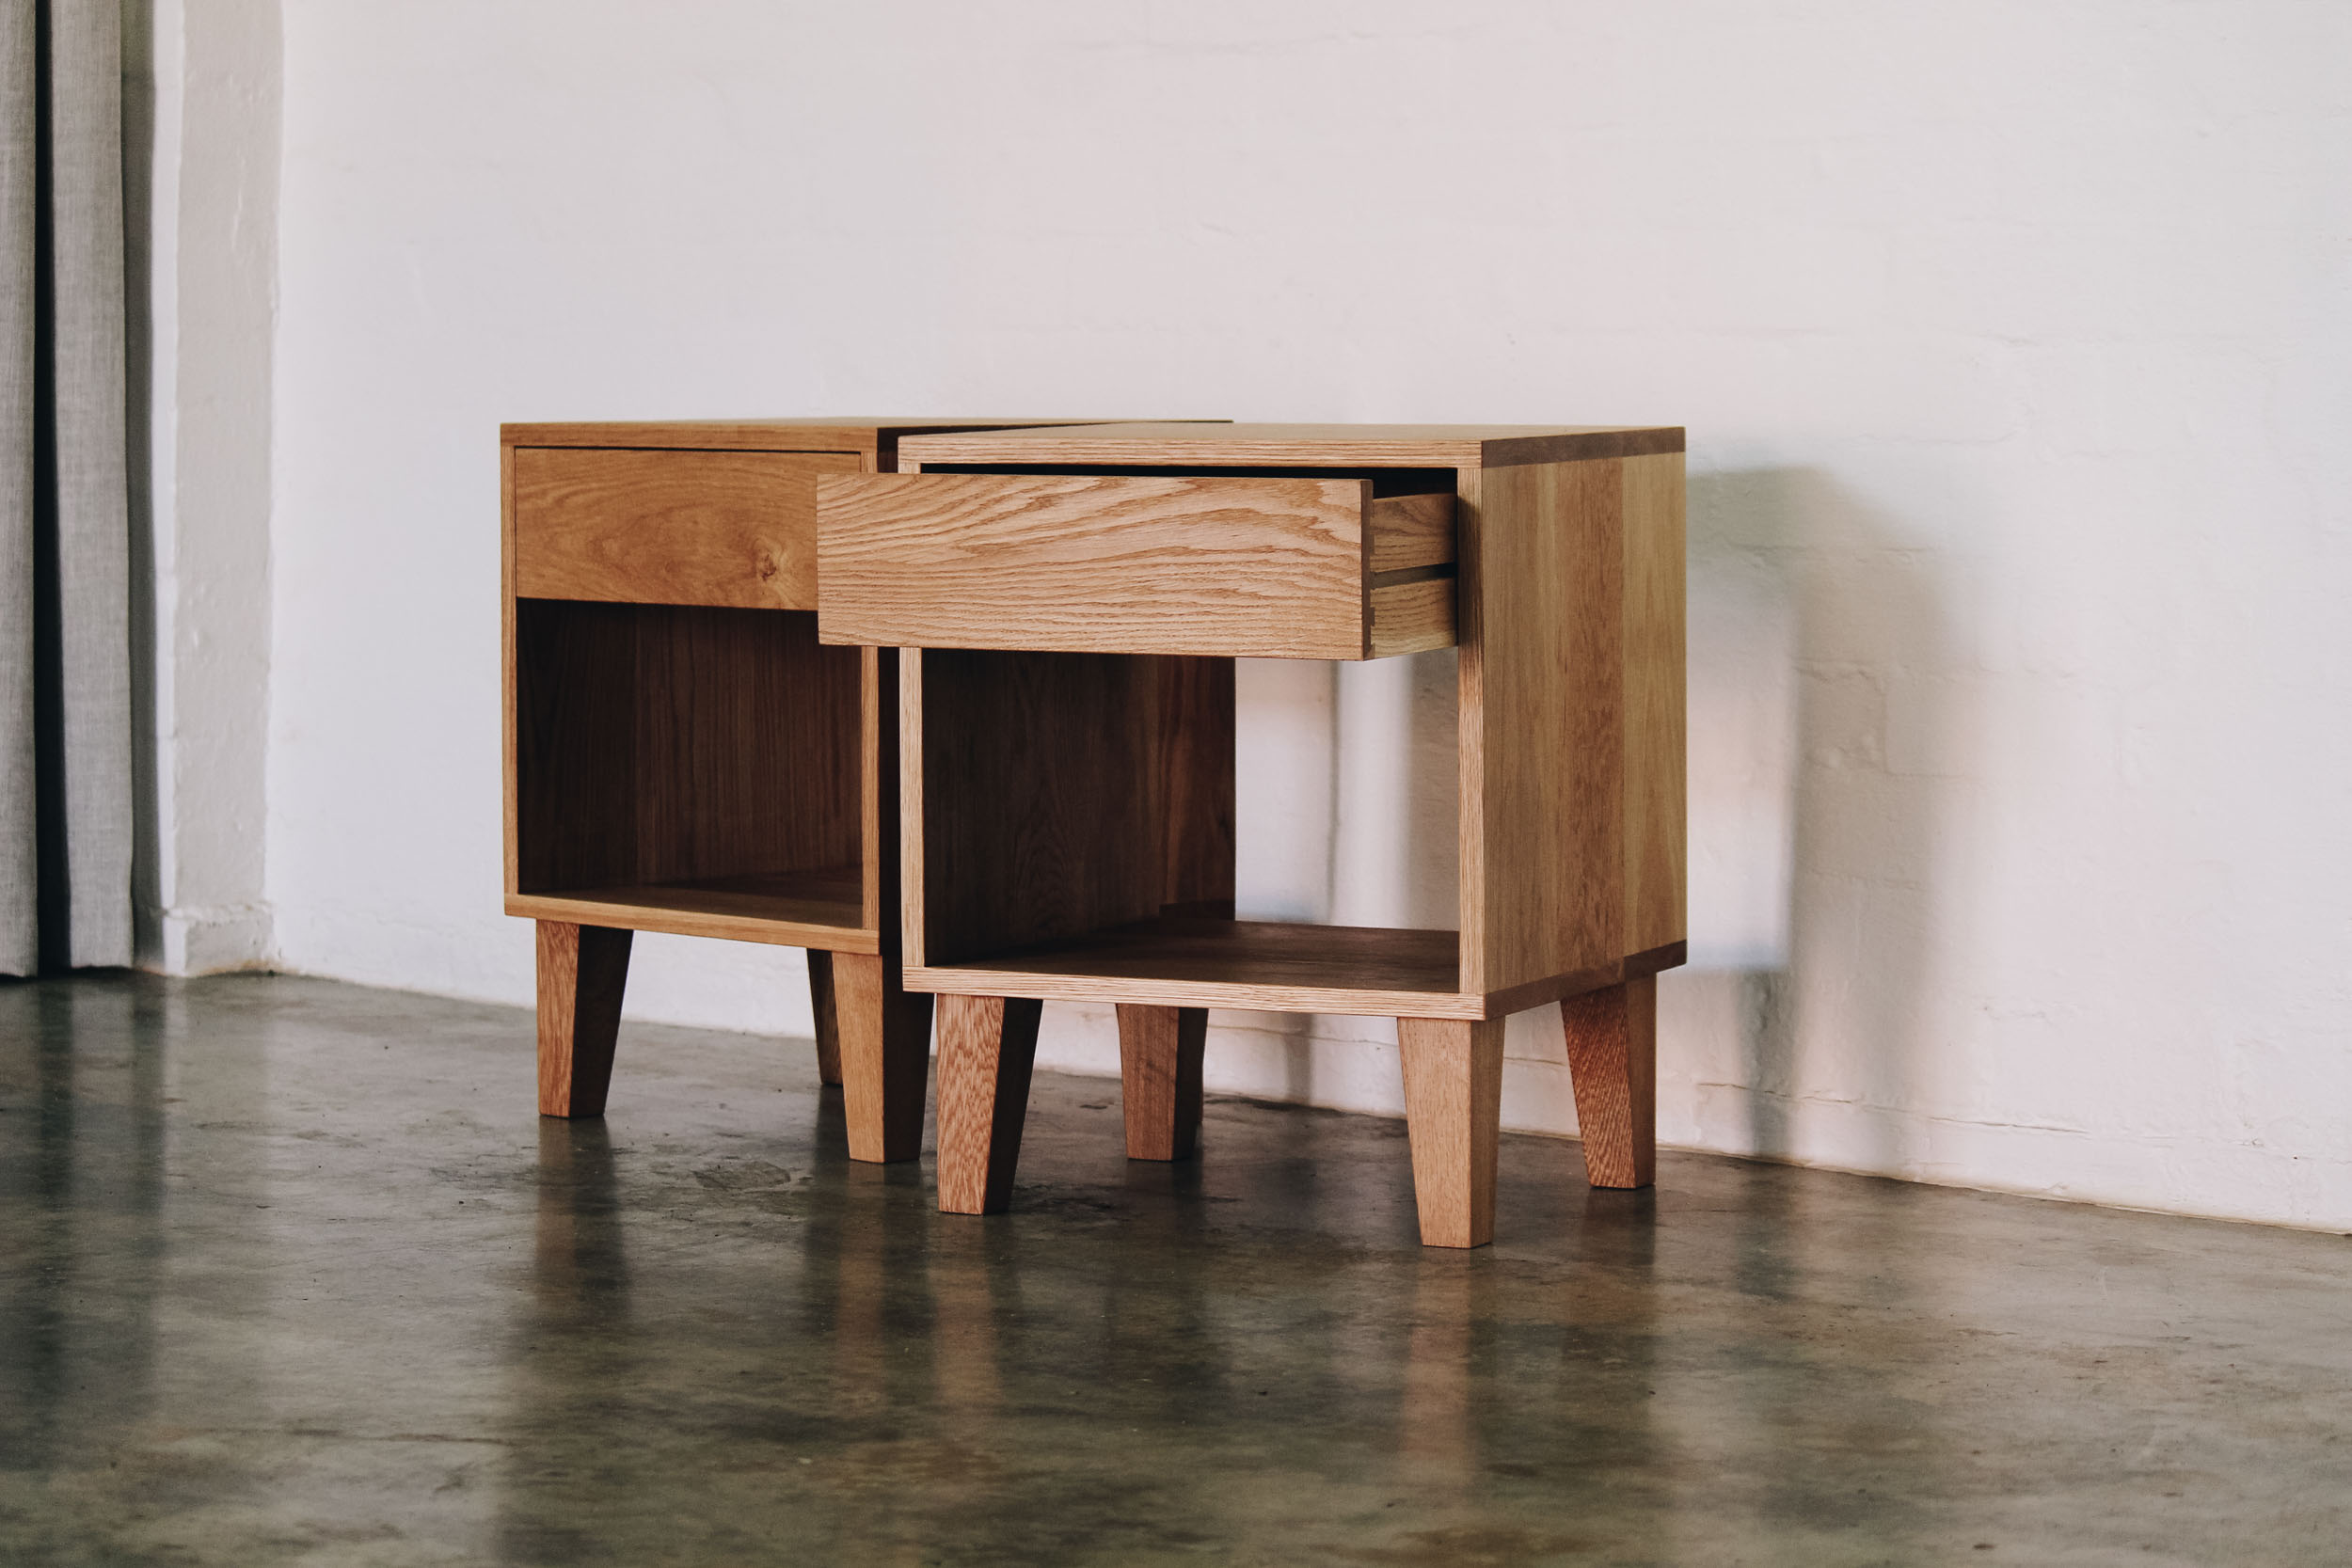 Al and Imo Handmade - American Oak Custom Bedside Tables.jpg